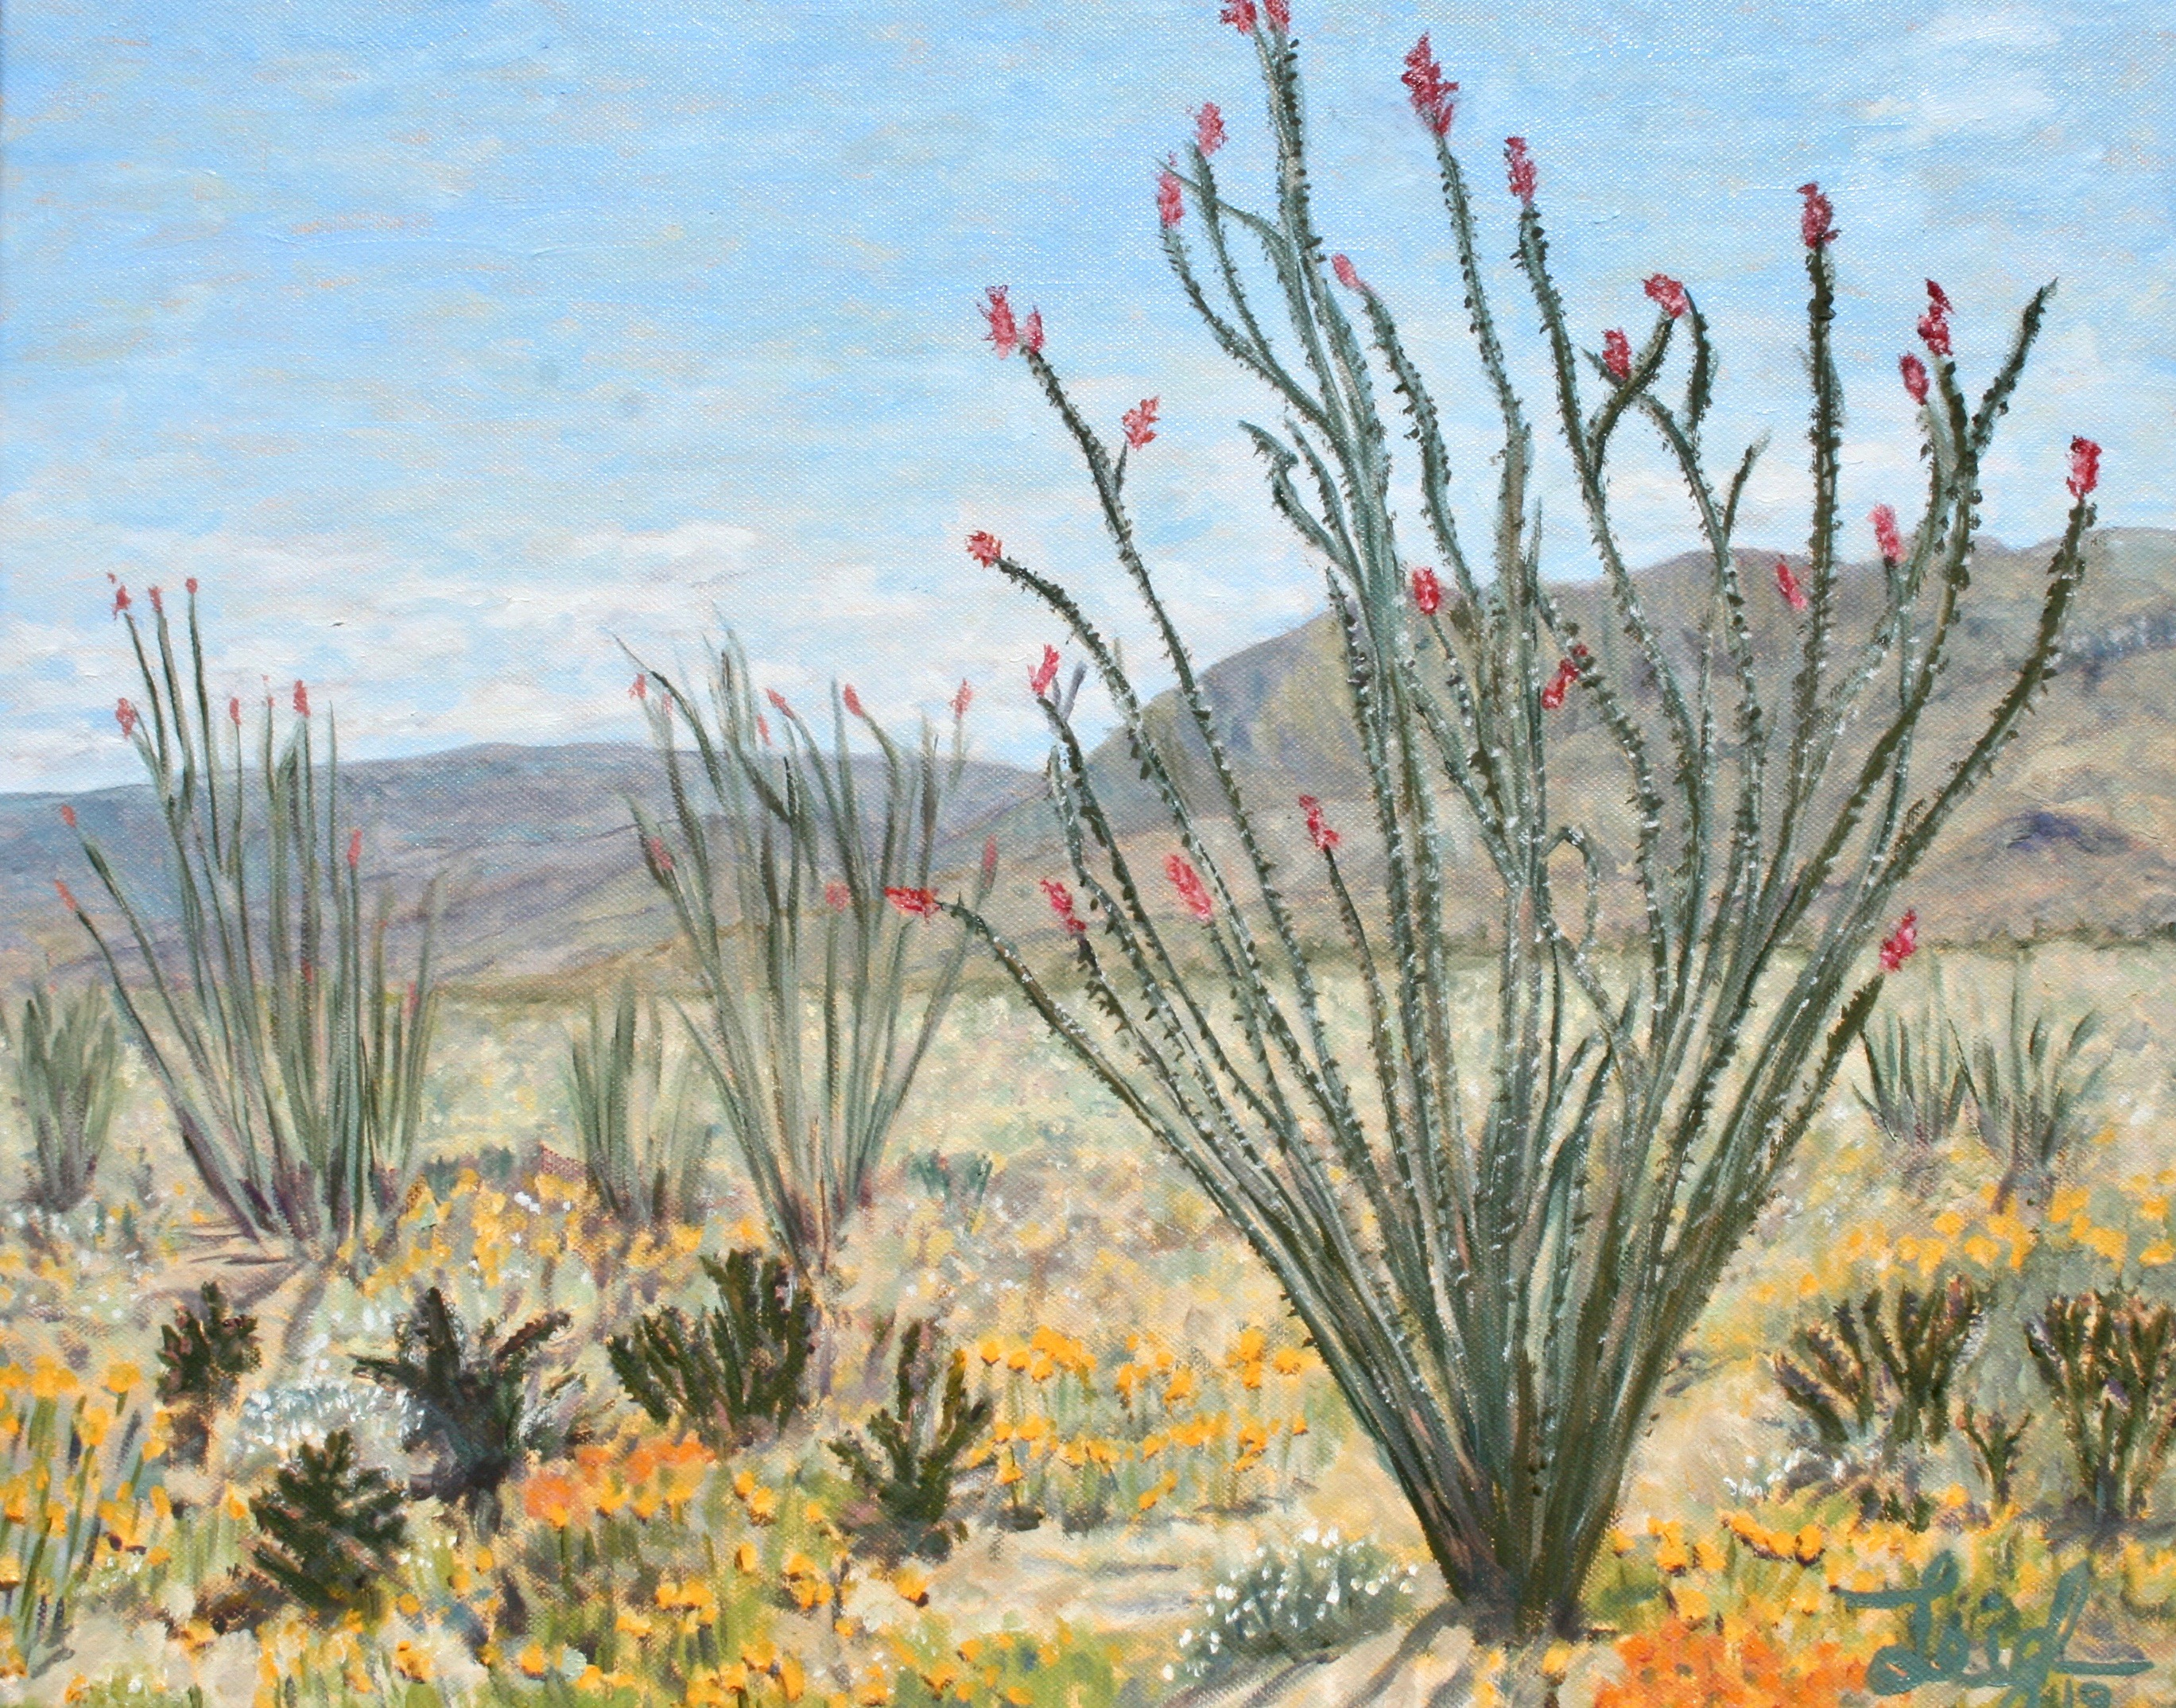 Anza Super Bloom #2 (Ocotillos)  ~  Art and Rochelle Lipson, Cottonwood Heights, UT 2019  •  20 x 16